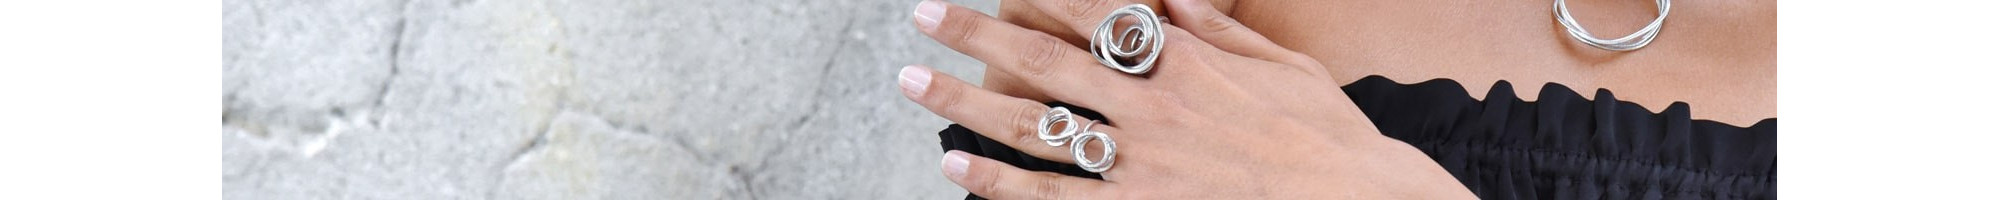 Women's Rings | Discover beautiful designs online here at BIJOU BOX